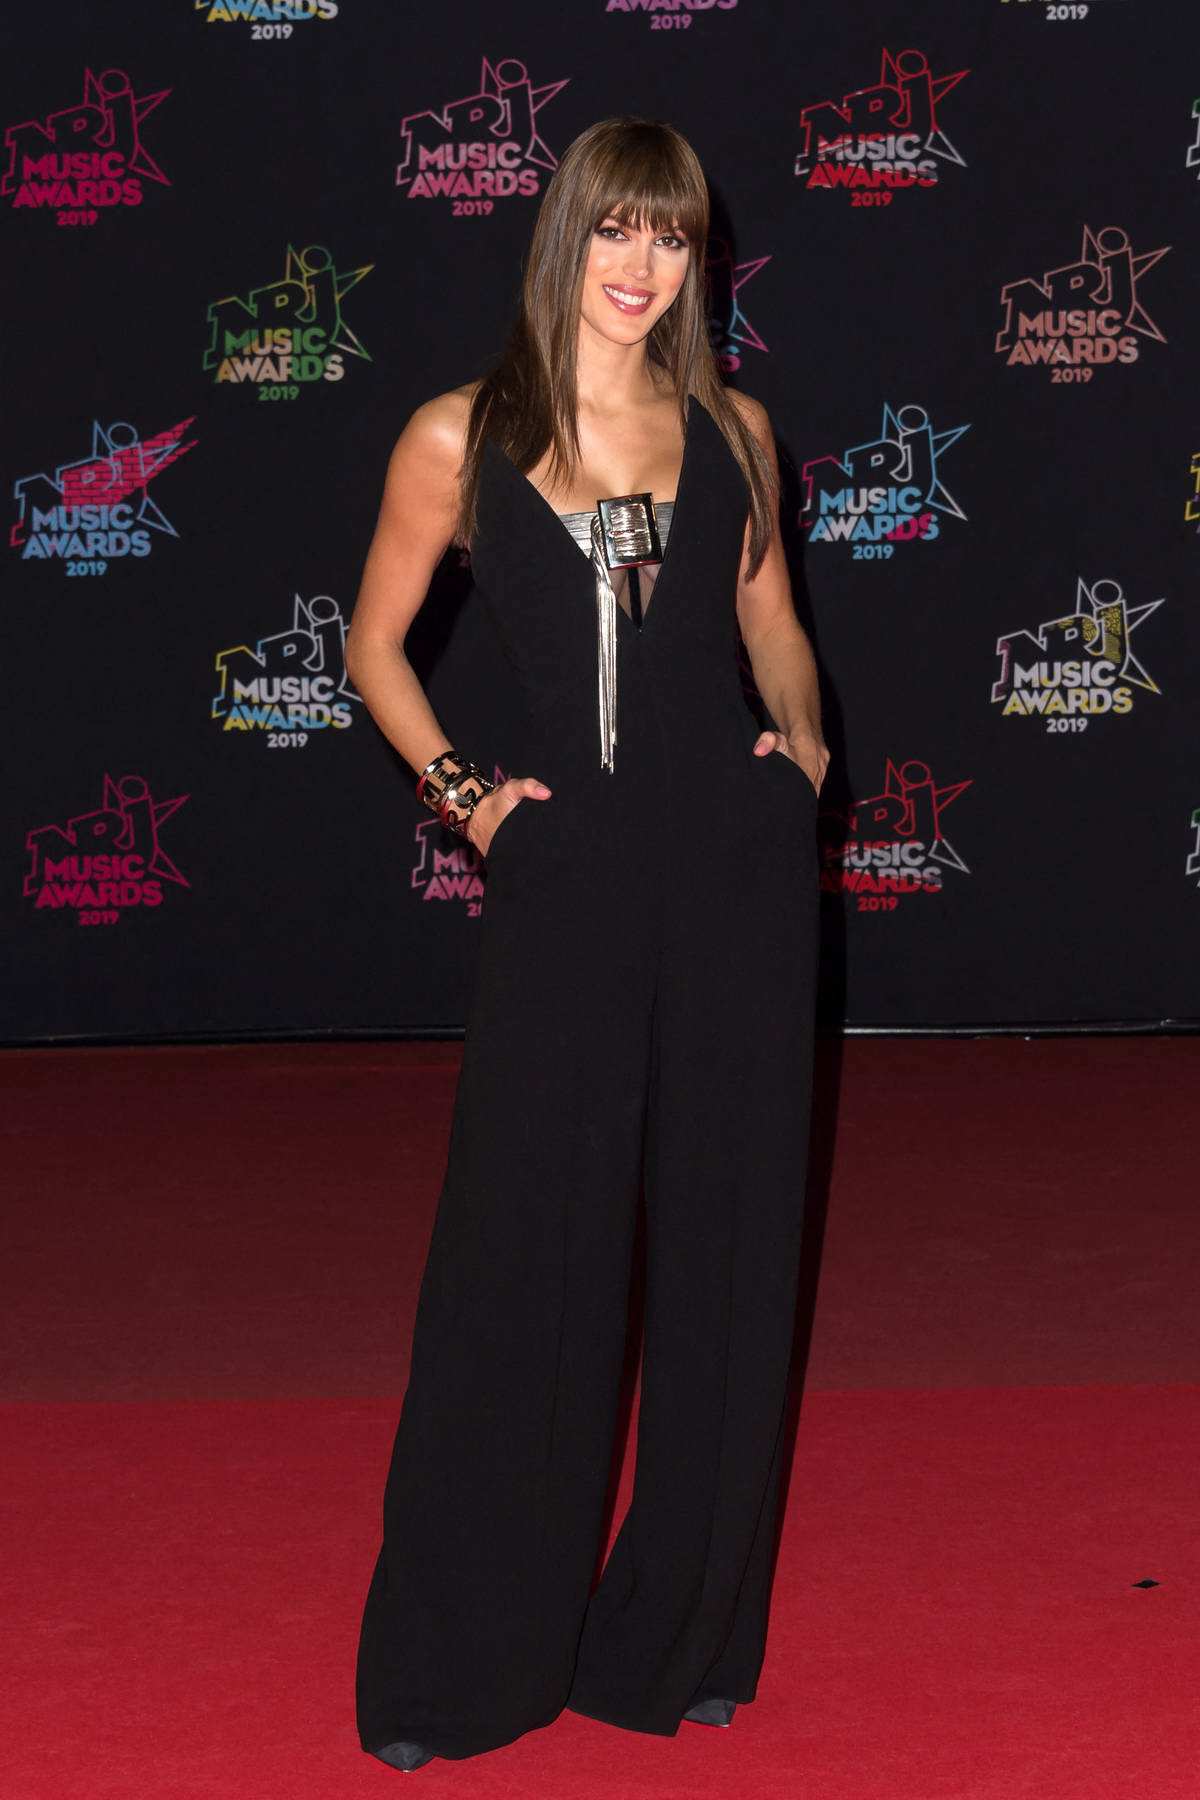 Iris Mittenaere attends the 21st NRJ Music Awards in Cannes, France